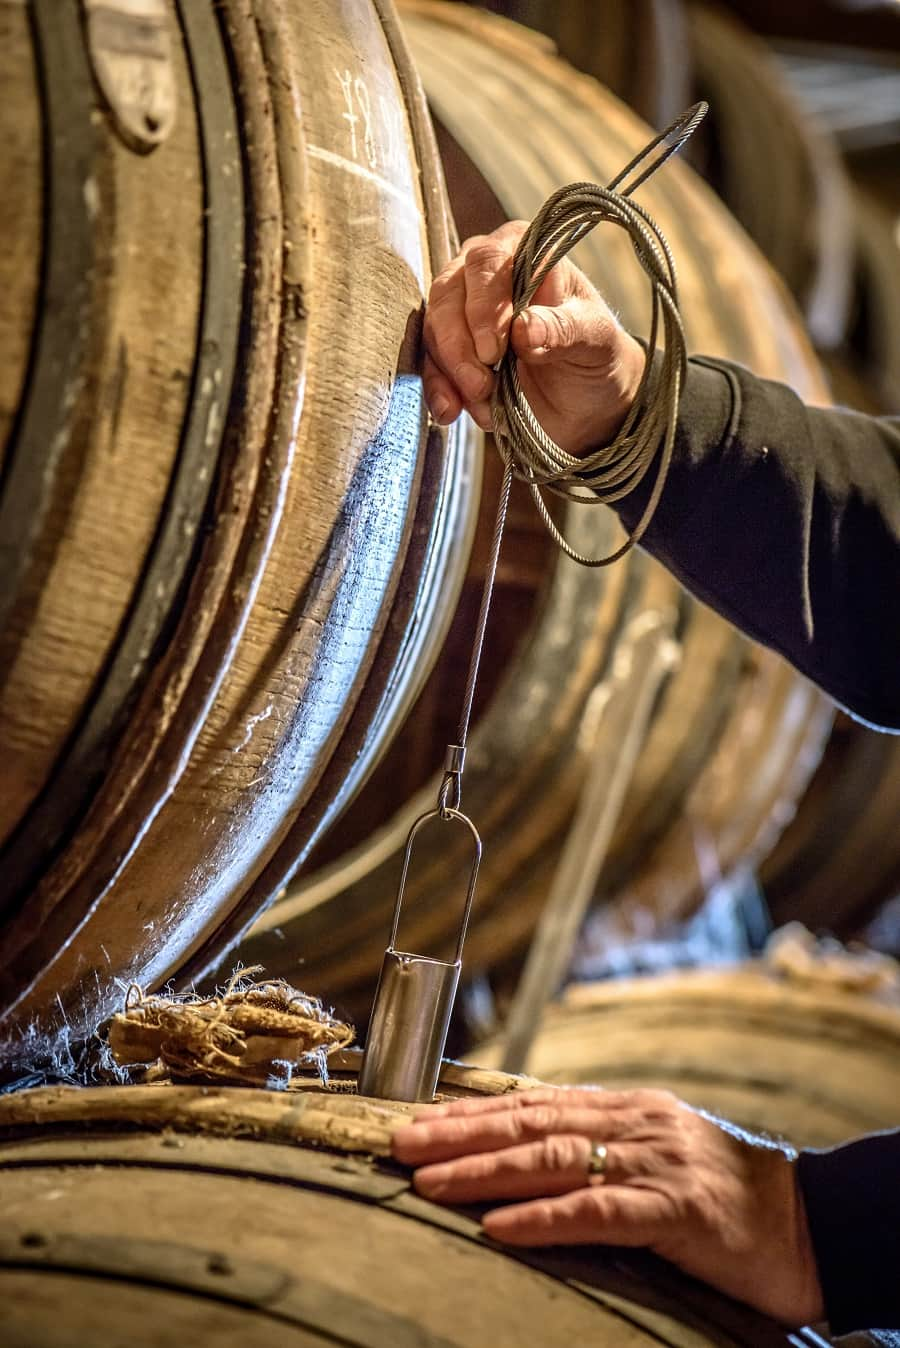 Cognac being checked when maturing in the oak barrel